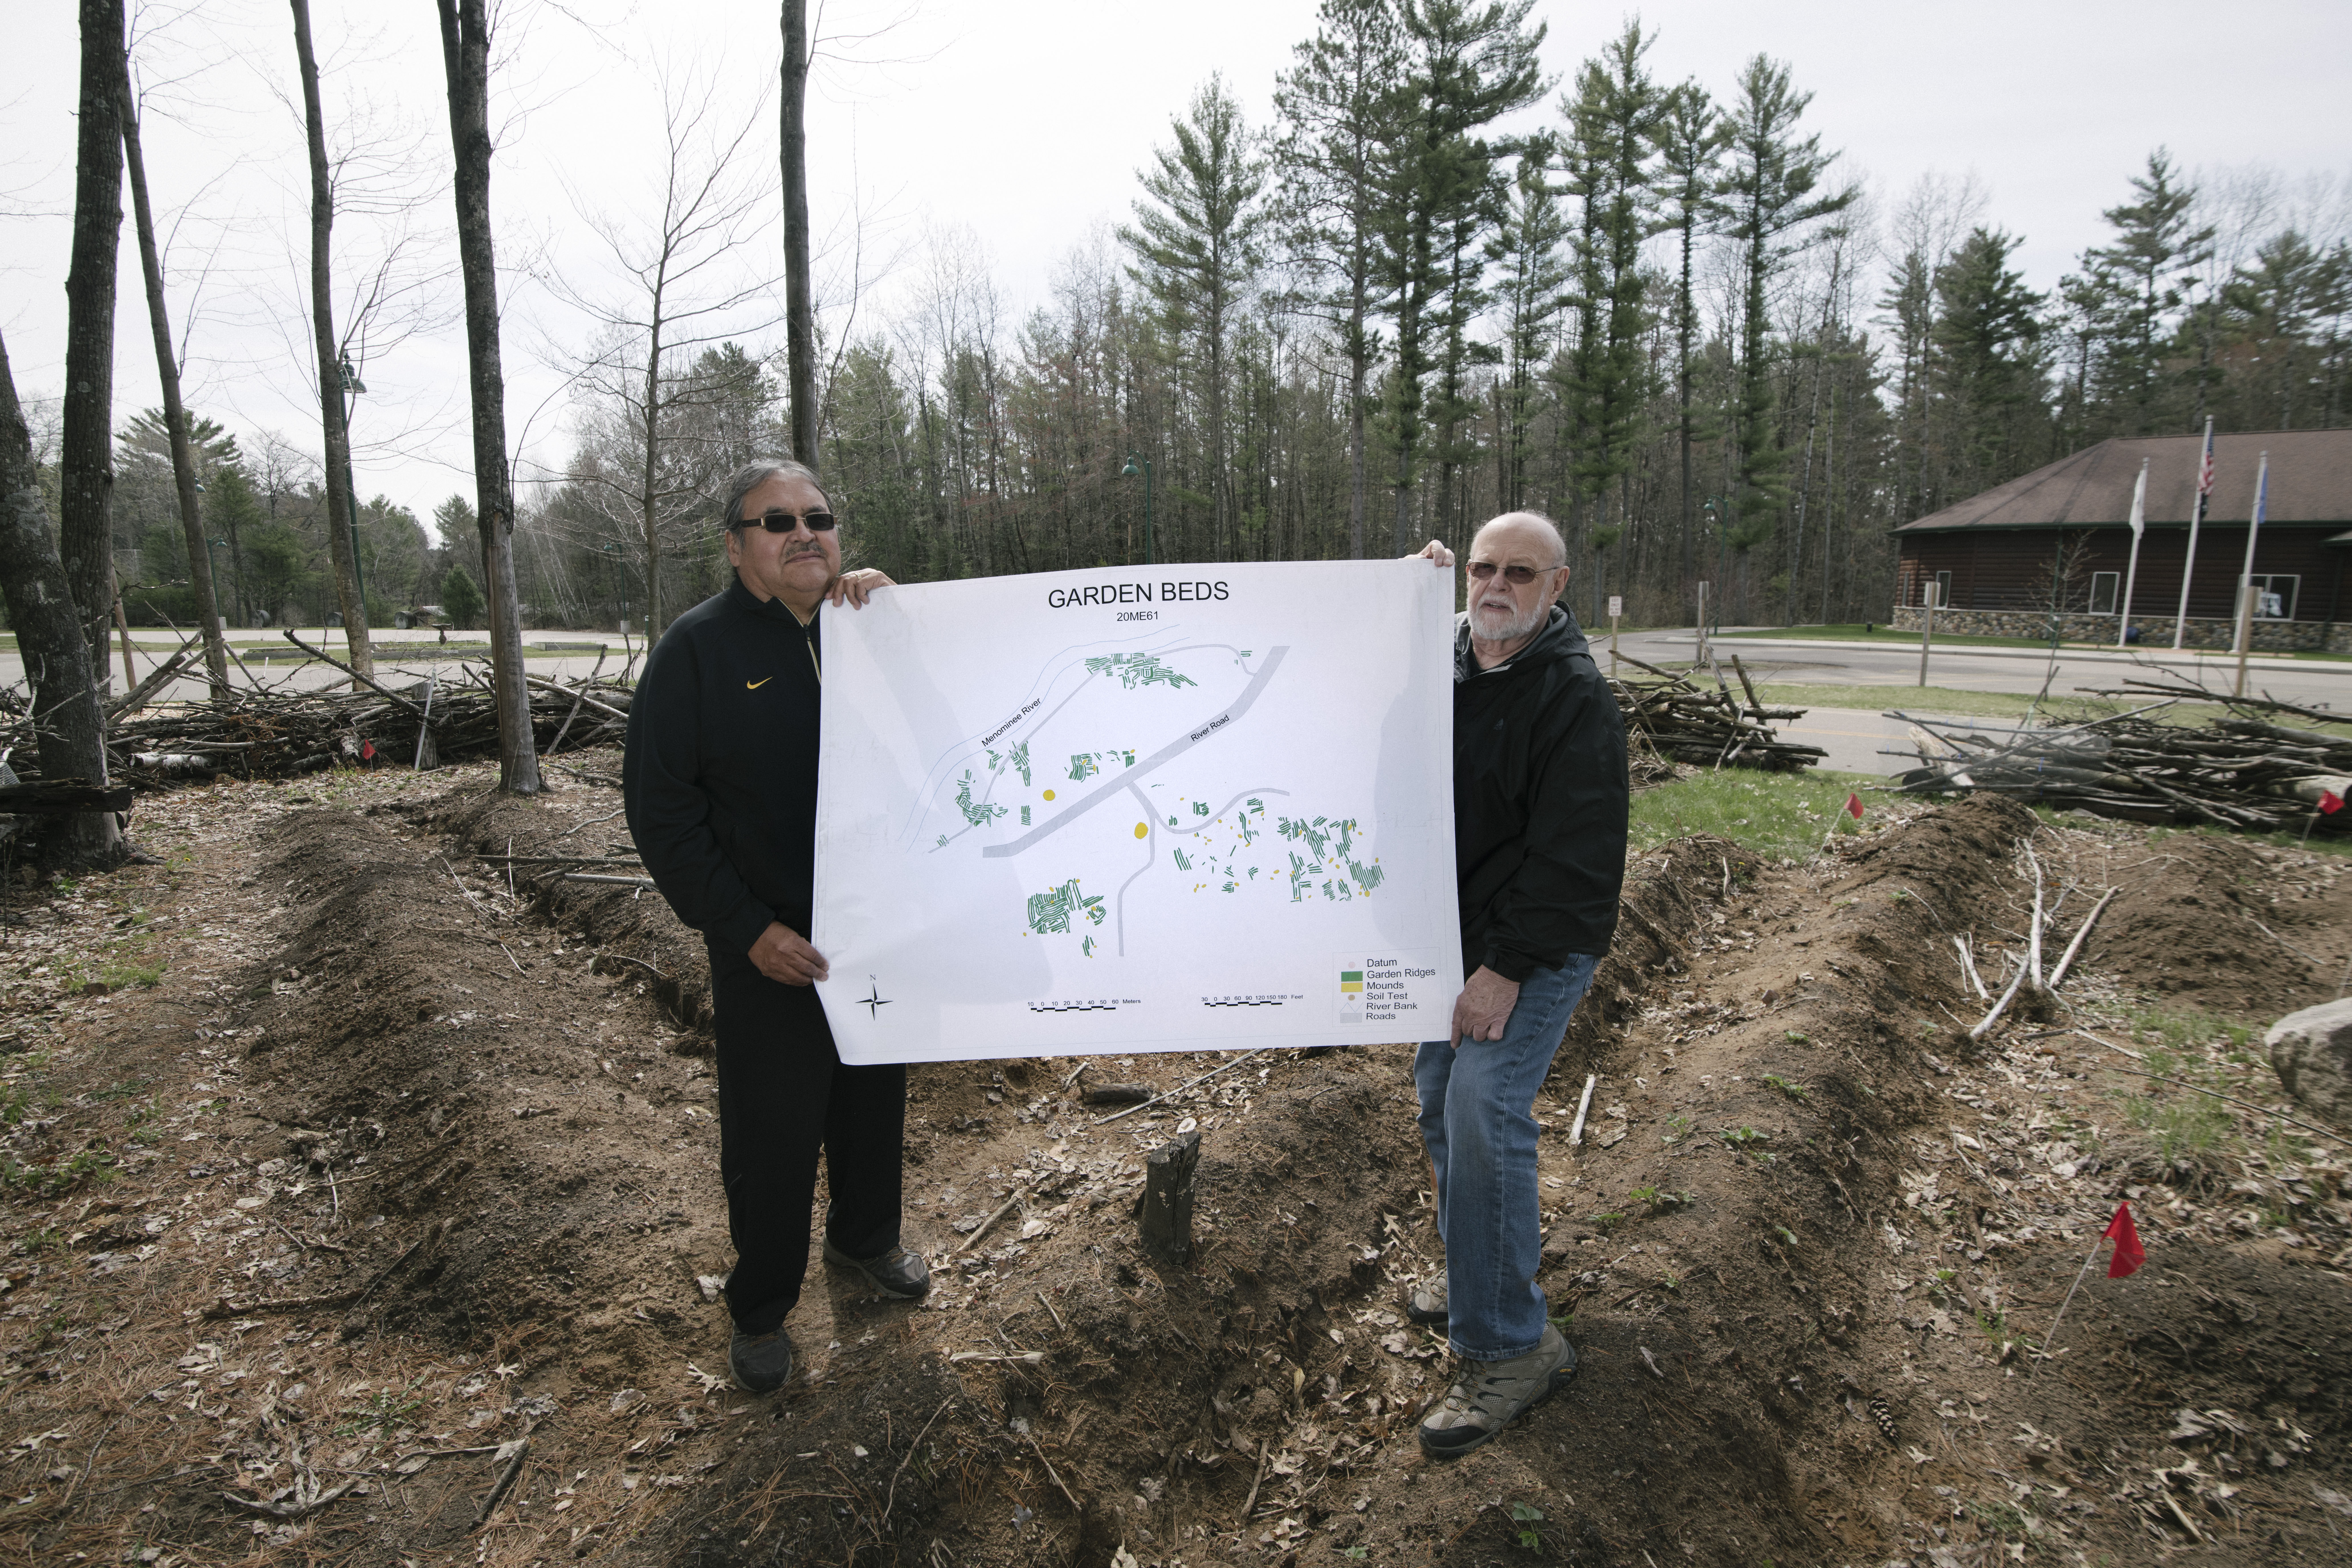 David Grignon and David Overstreet stand in a replica garden they created to learn more about ancient agricultural techniques, following archaeologists' discovery of ancient raised garden beds in Menominee village sites.